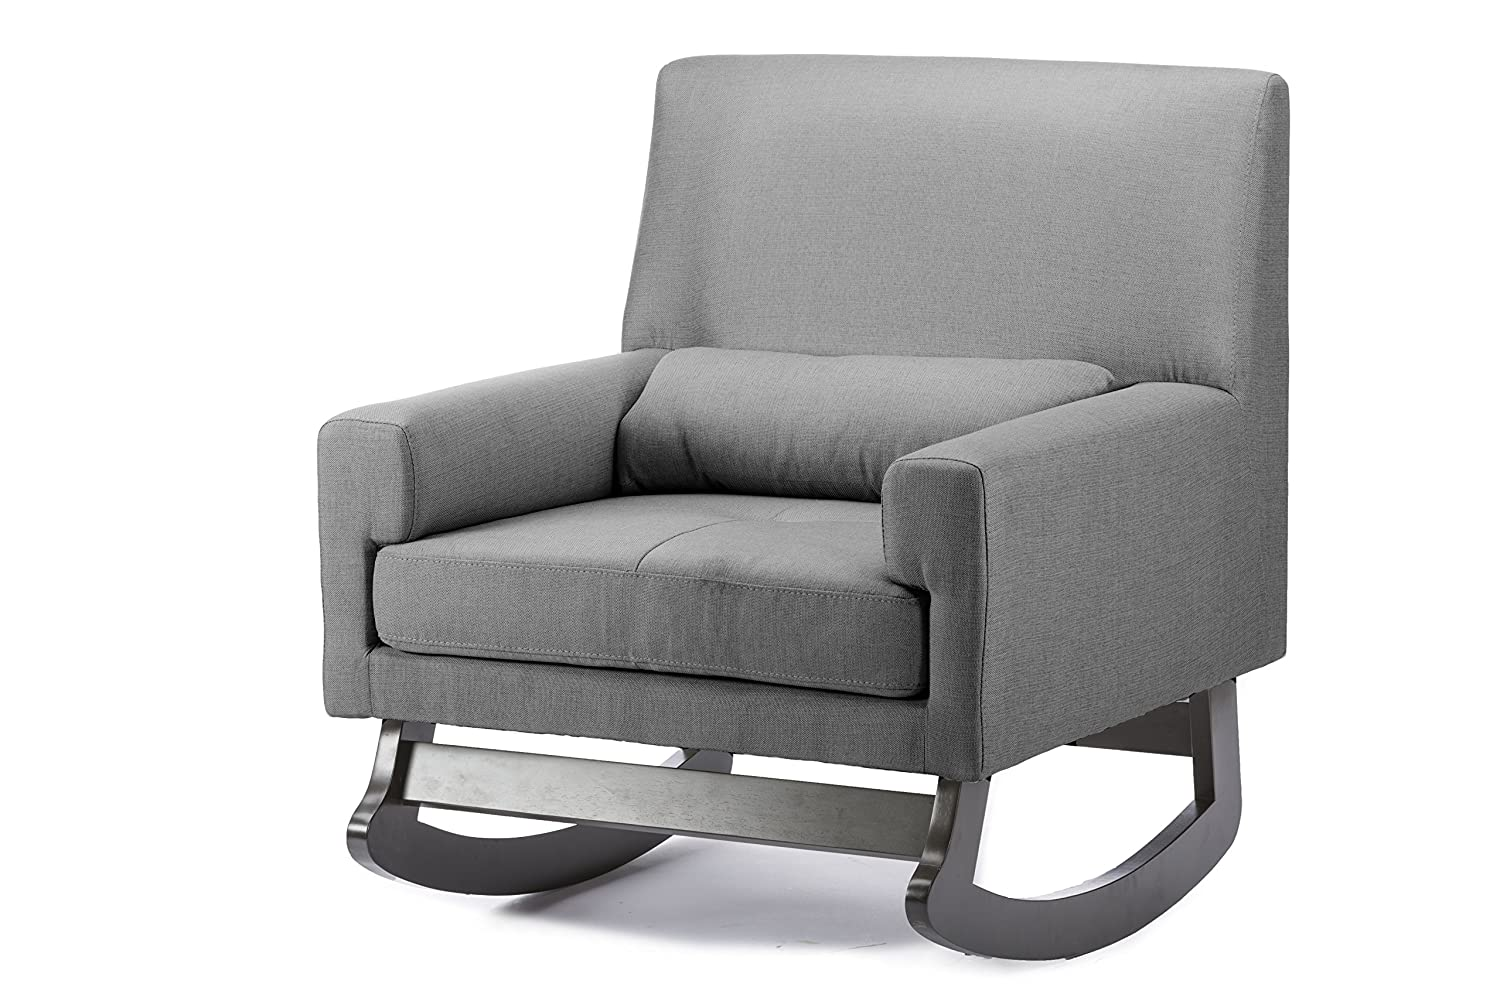 Lovely Amazon.com: Baxton Studio Imperium Wood And Linen Contemporary Rocking Chair  With Pillow, Gray: Kitchen U0026 Dining